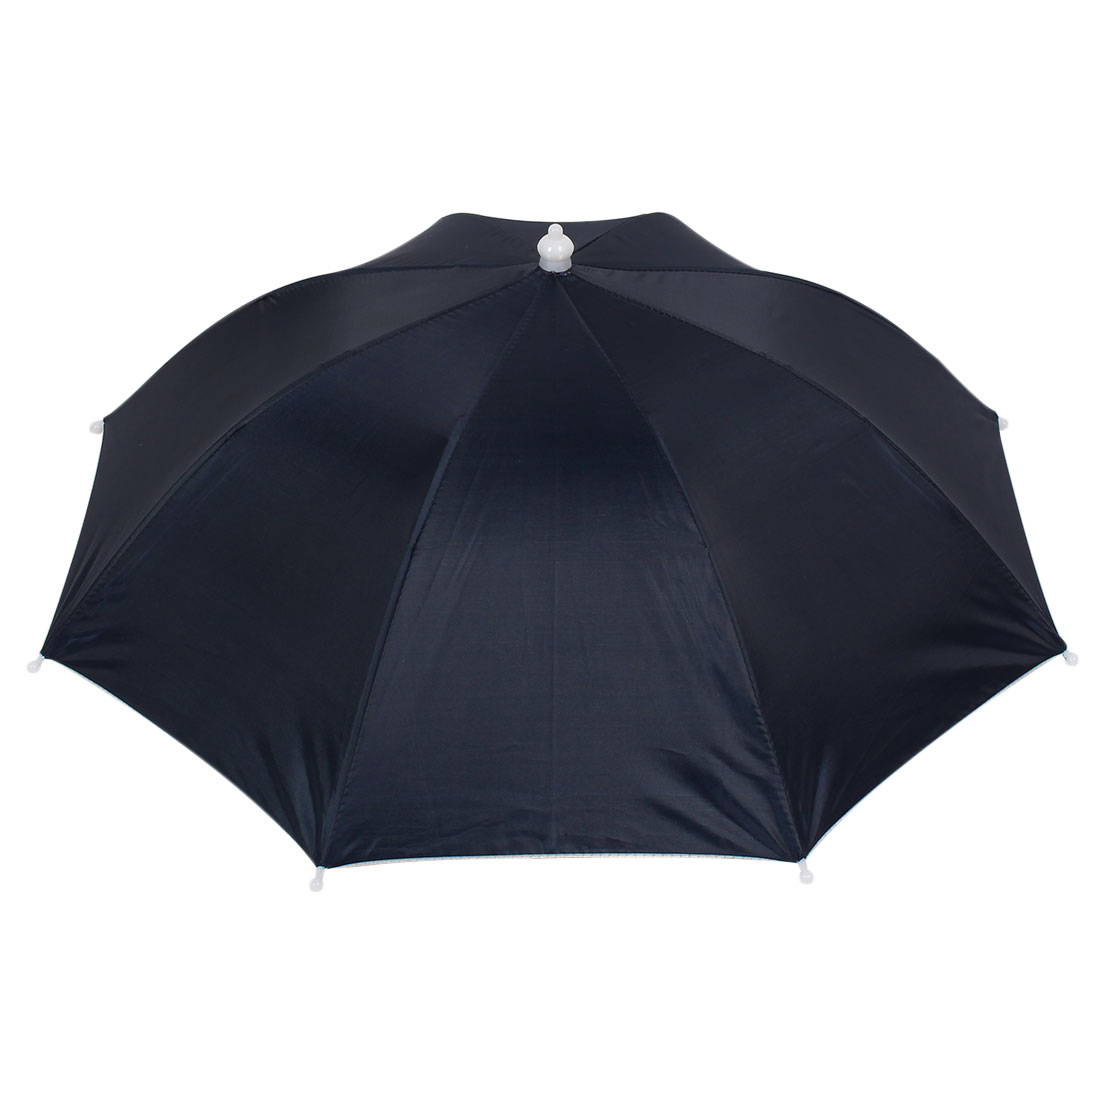 Fishing Dark Blue Canopy 8 Ribs Elastic Head Band Umbrella